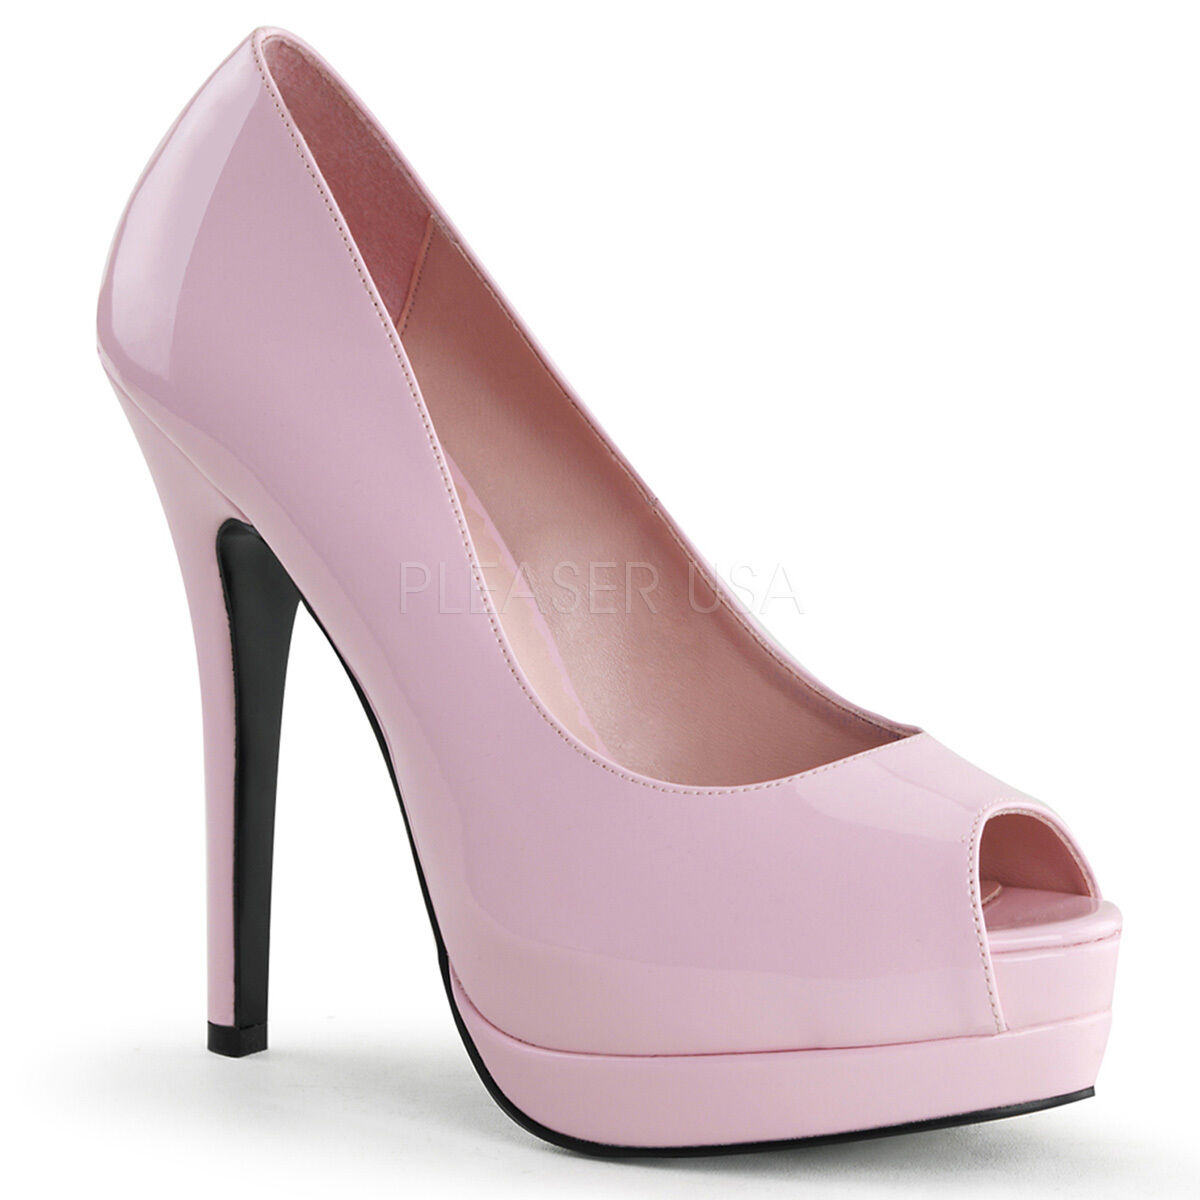 BORDELLO Toe By Pleaser - Bella-12 Platform Peep Toe BORDELLO Pump 5 1/4